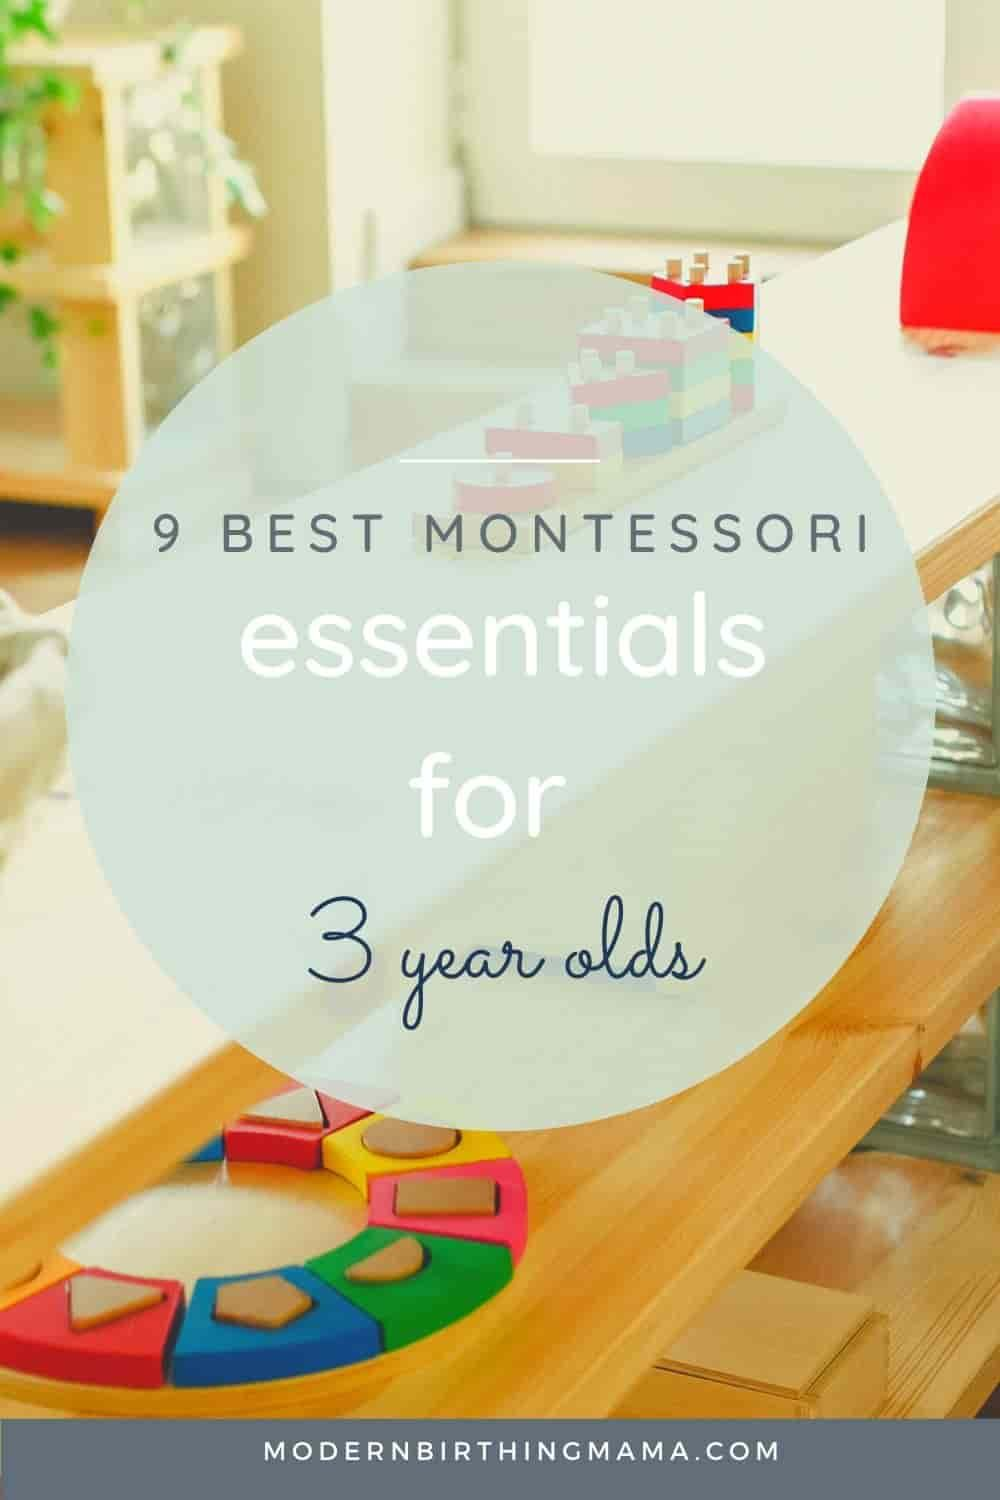 9 Top Montessori Learning Essentials for 3 year olds